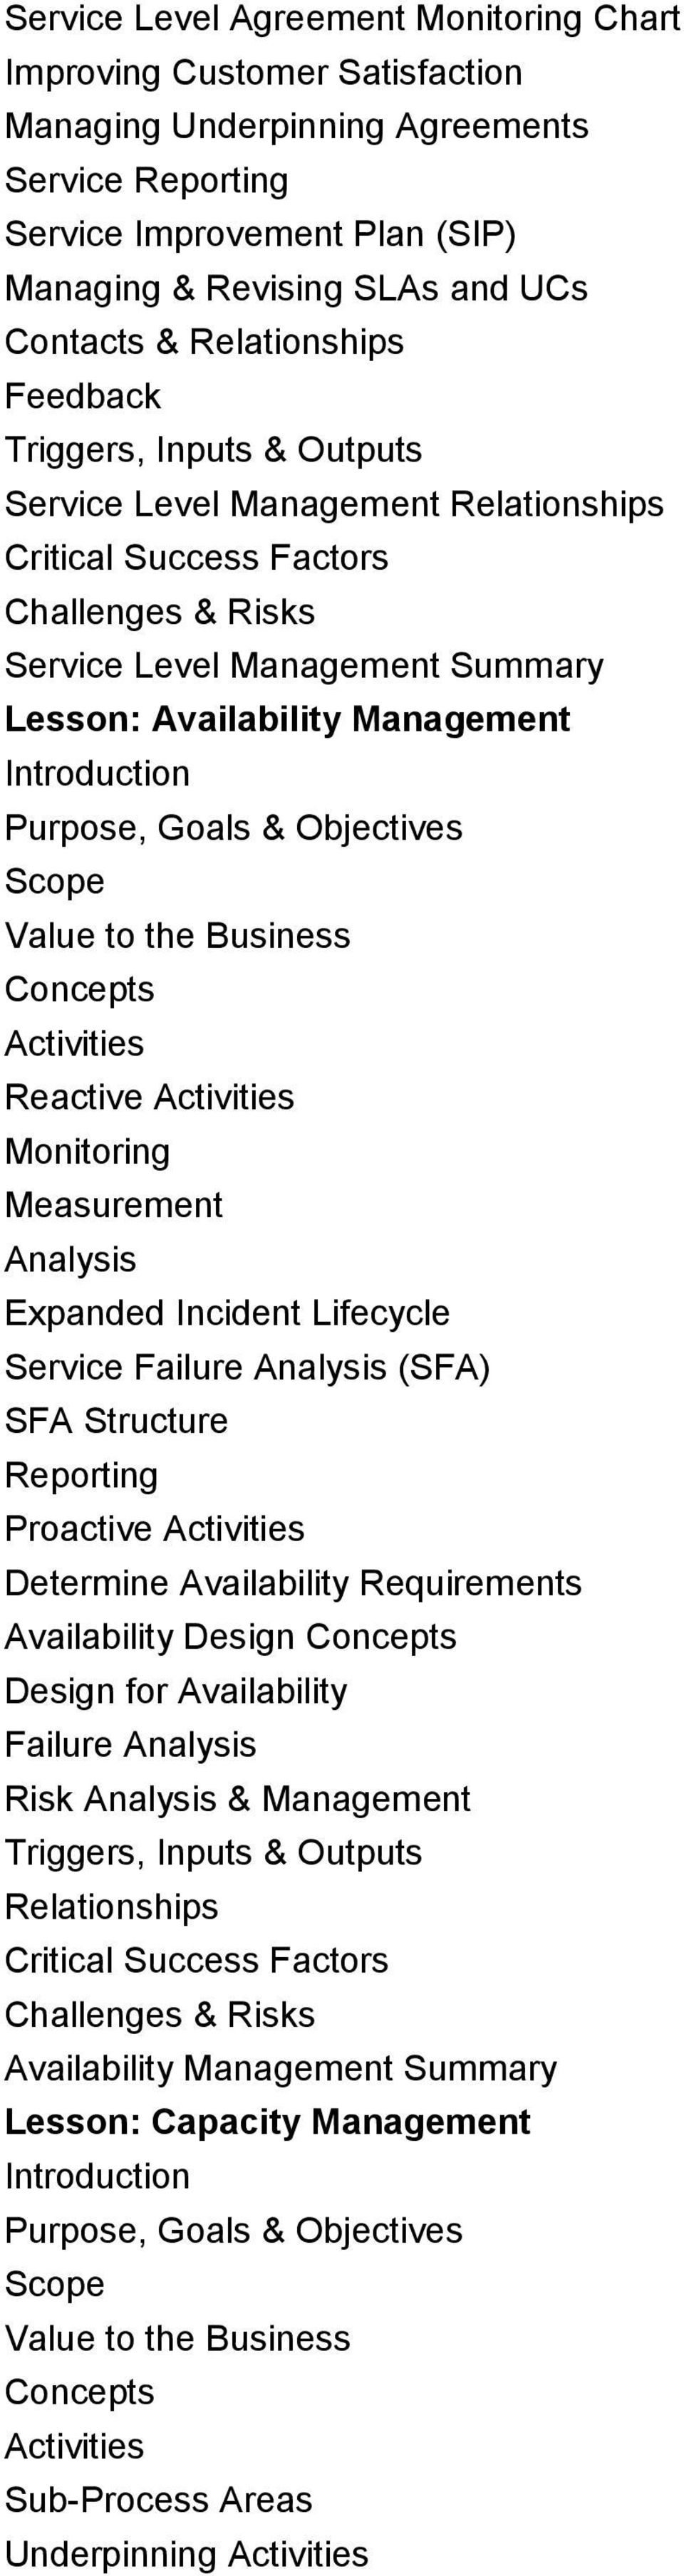 Monitoring Measurement Analysis Expanded Incident Lifecycle Service Failure Analysis (SFA) SFA Structure Reporting Proactive Determine Availability Requirements